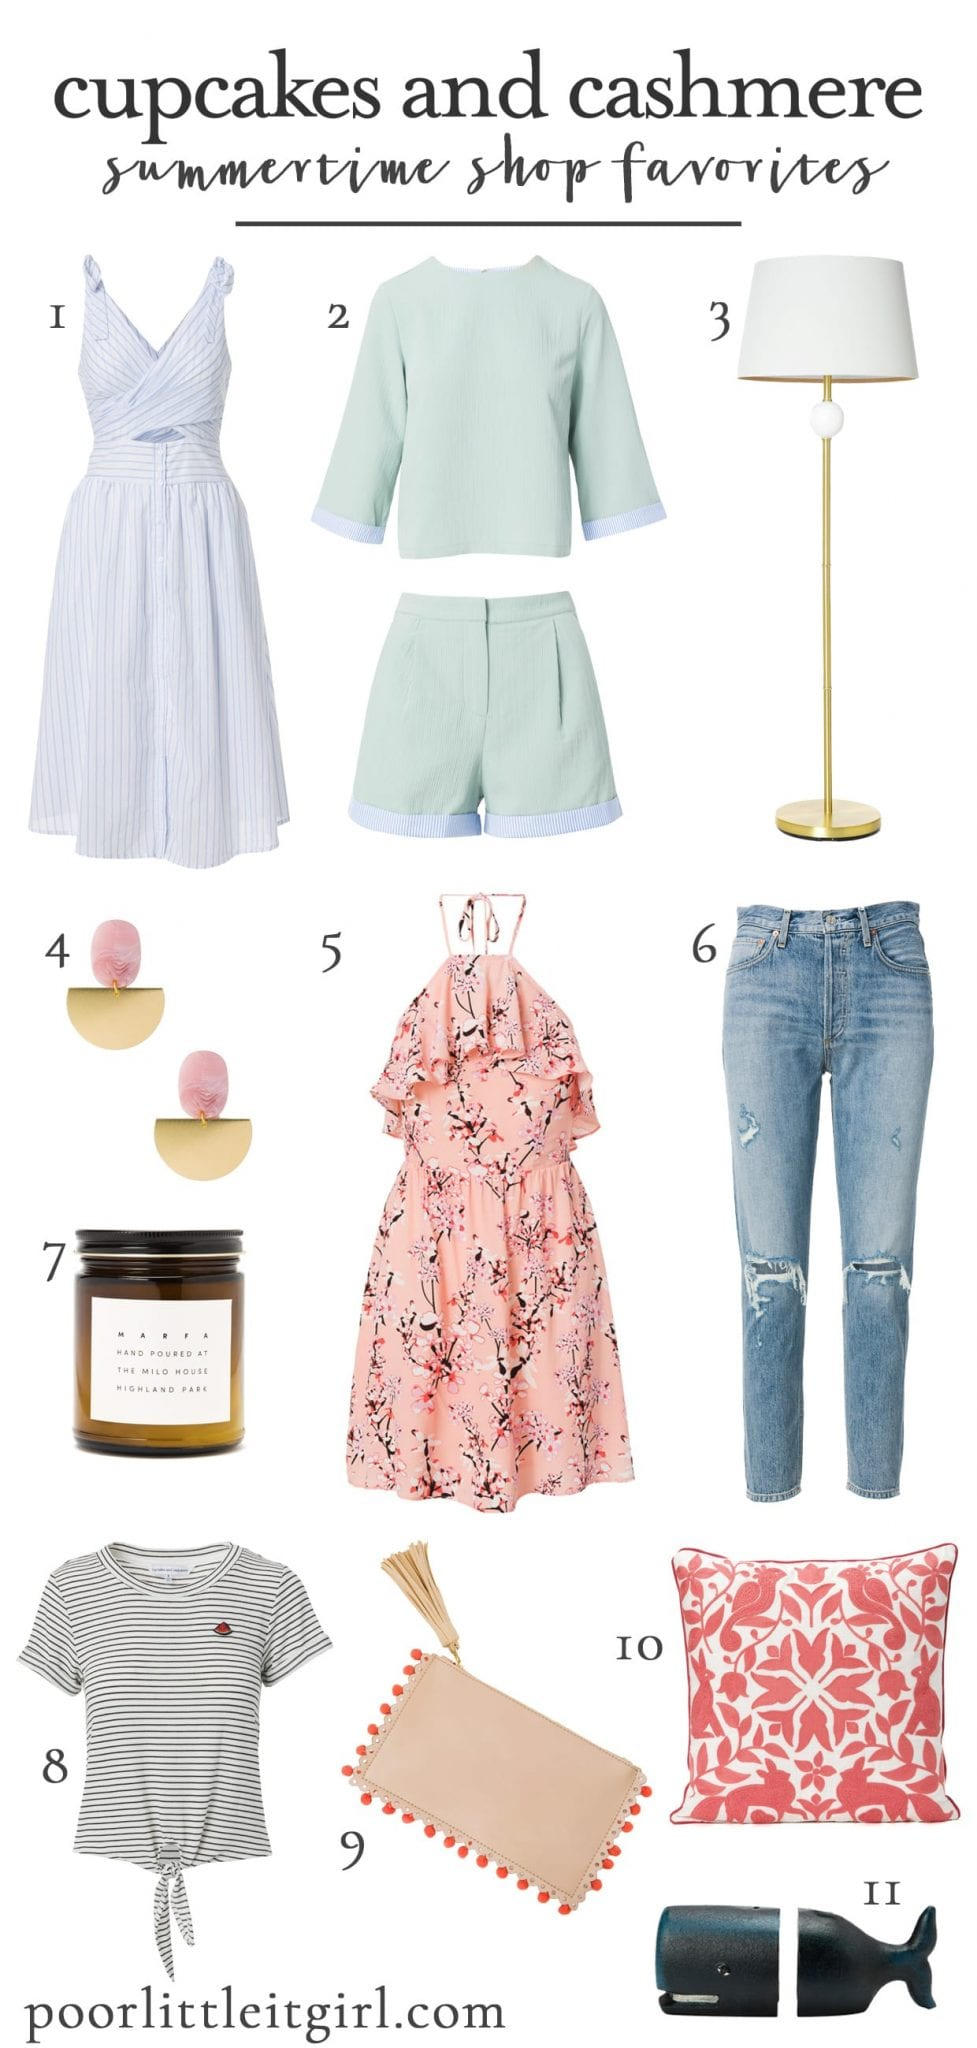 Cupcakes And Cashmere Summertime Shop Favorites Poor Little It Girl